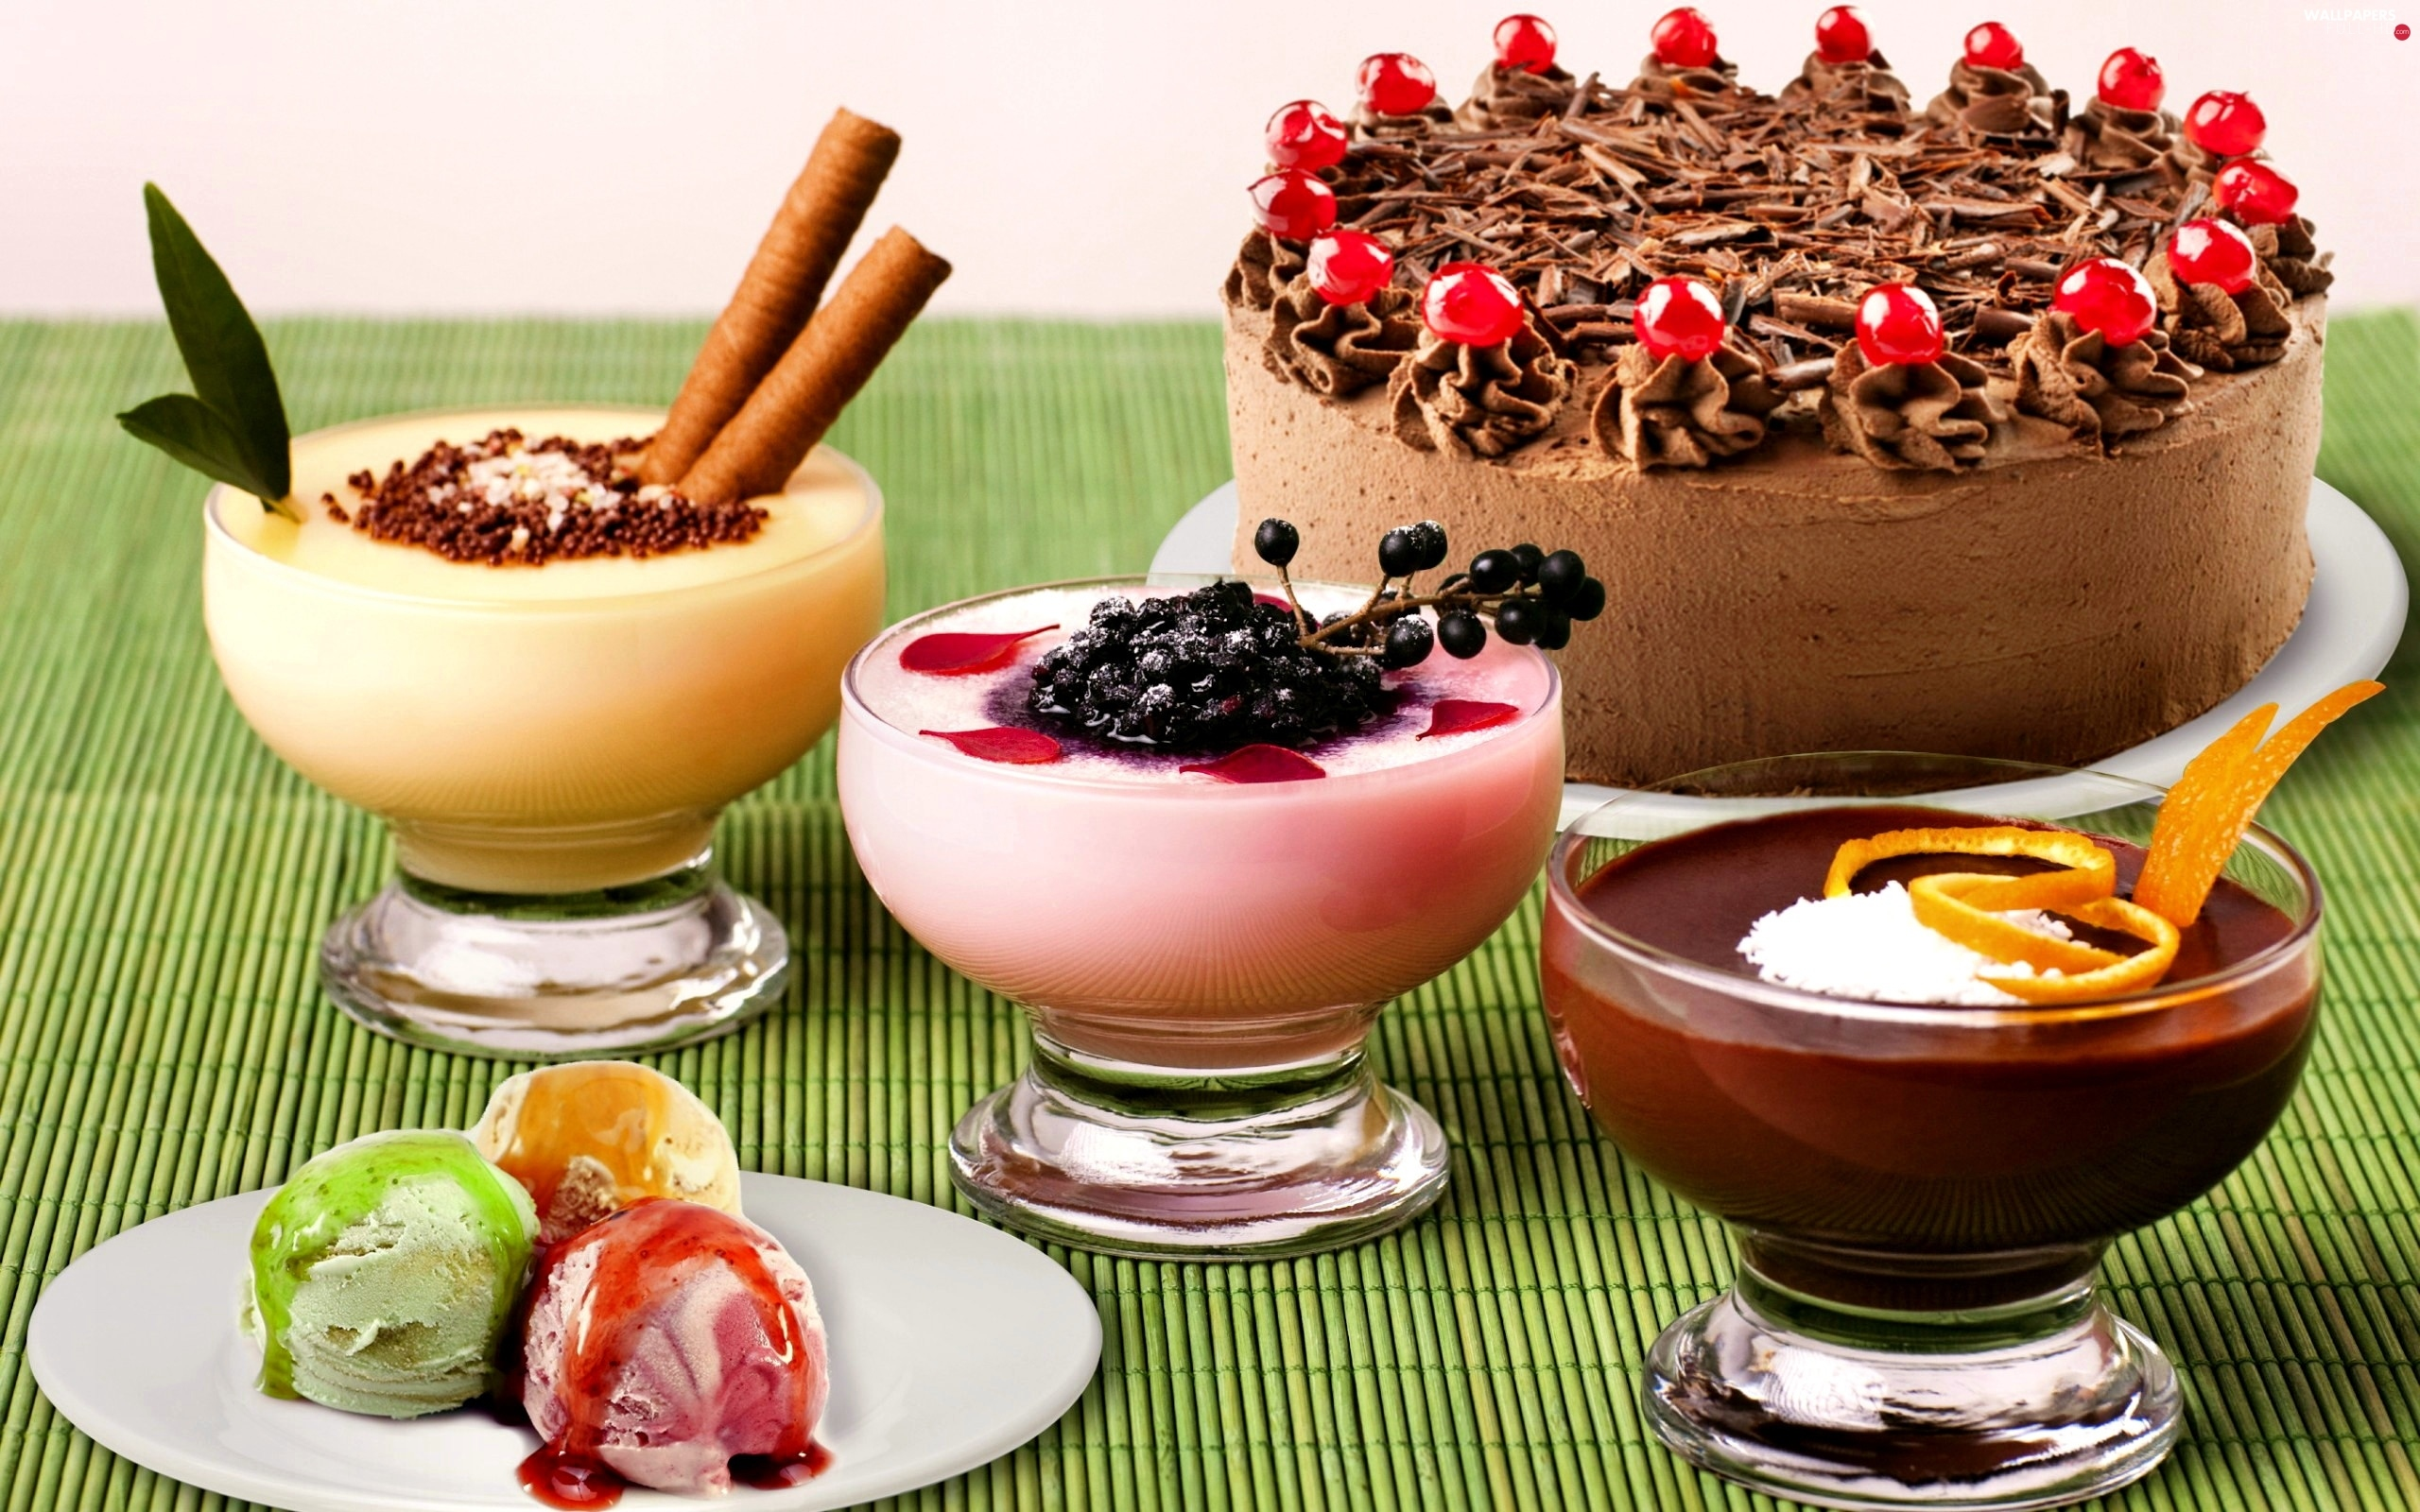 ice cream, desserts, Cake, color